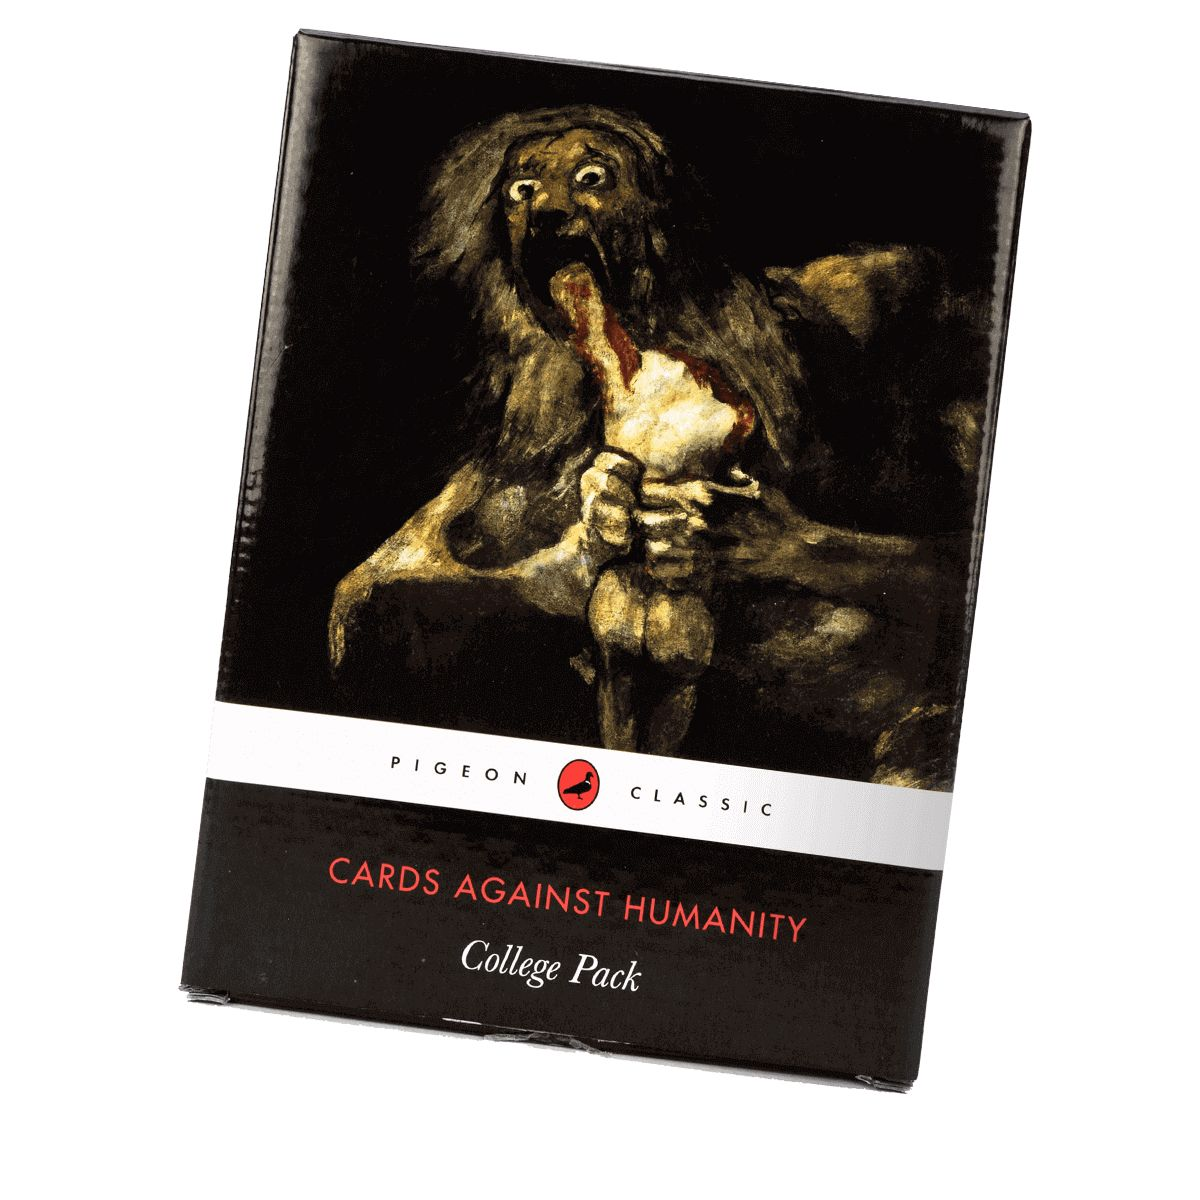 Cards Against Humanity College Pack Cards Against Humanity Game Cards Against Humanity Expansion Humanity Game